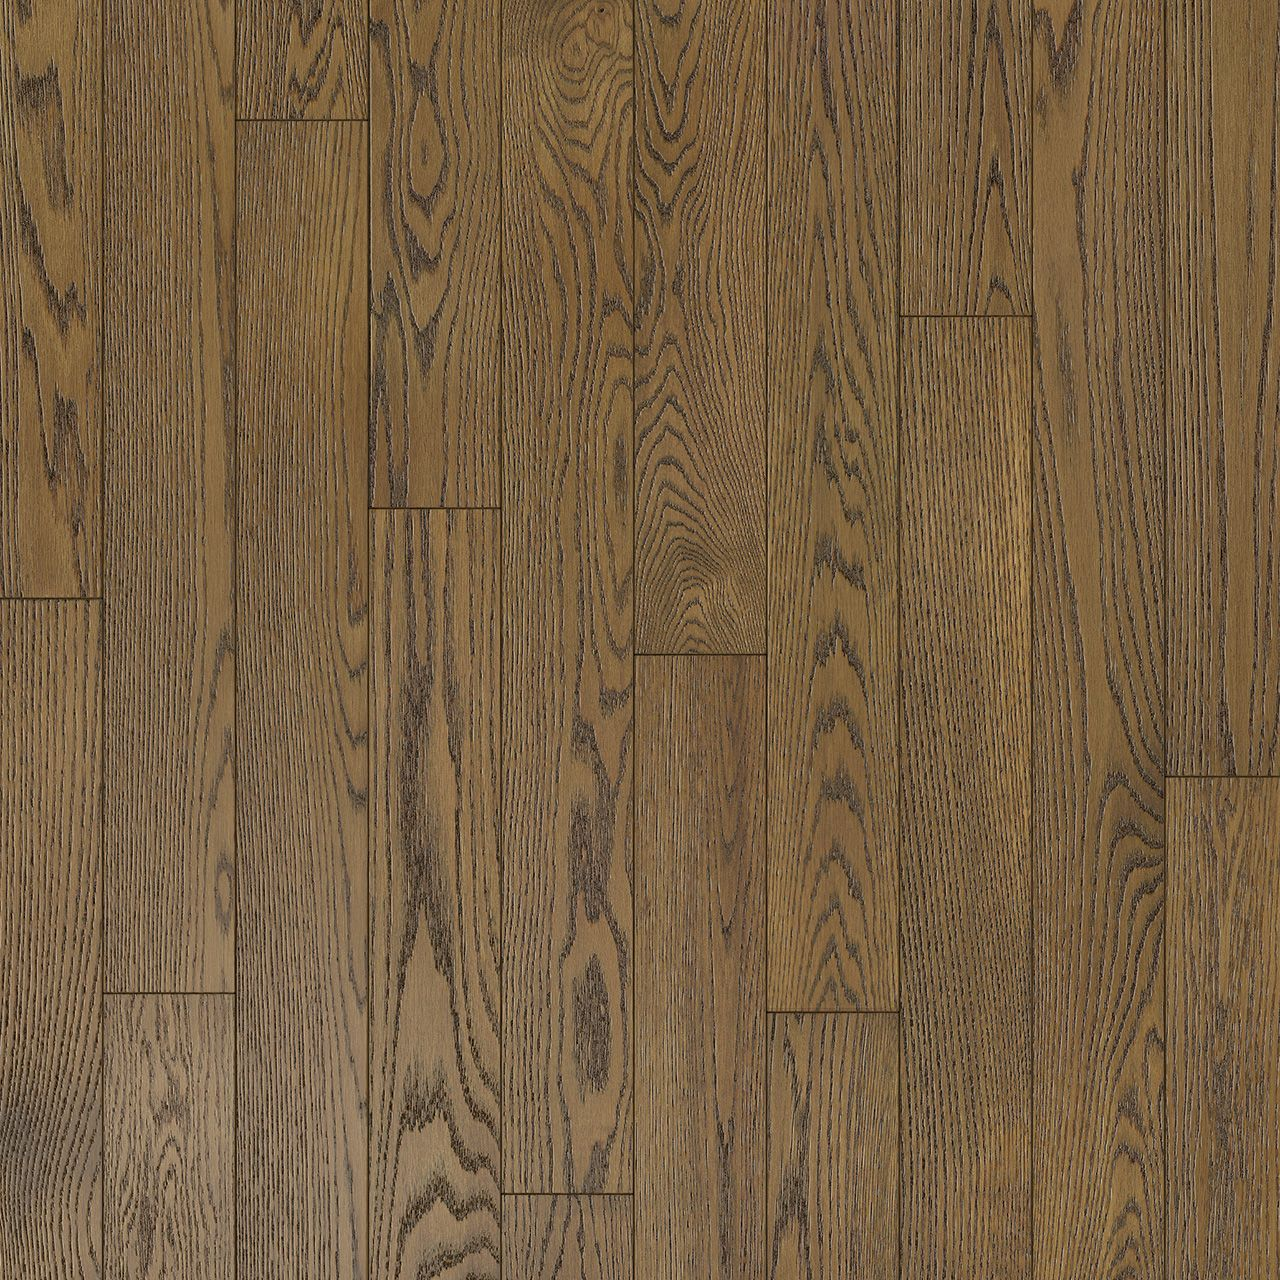 Oak wood floor texture red oak santa fe texture g for Floor wood texture